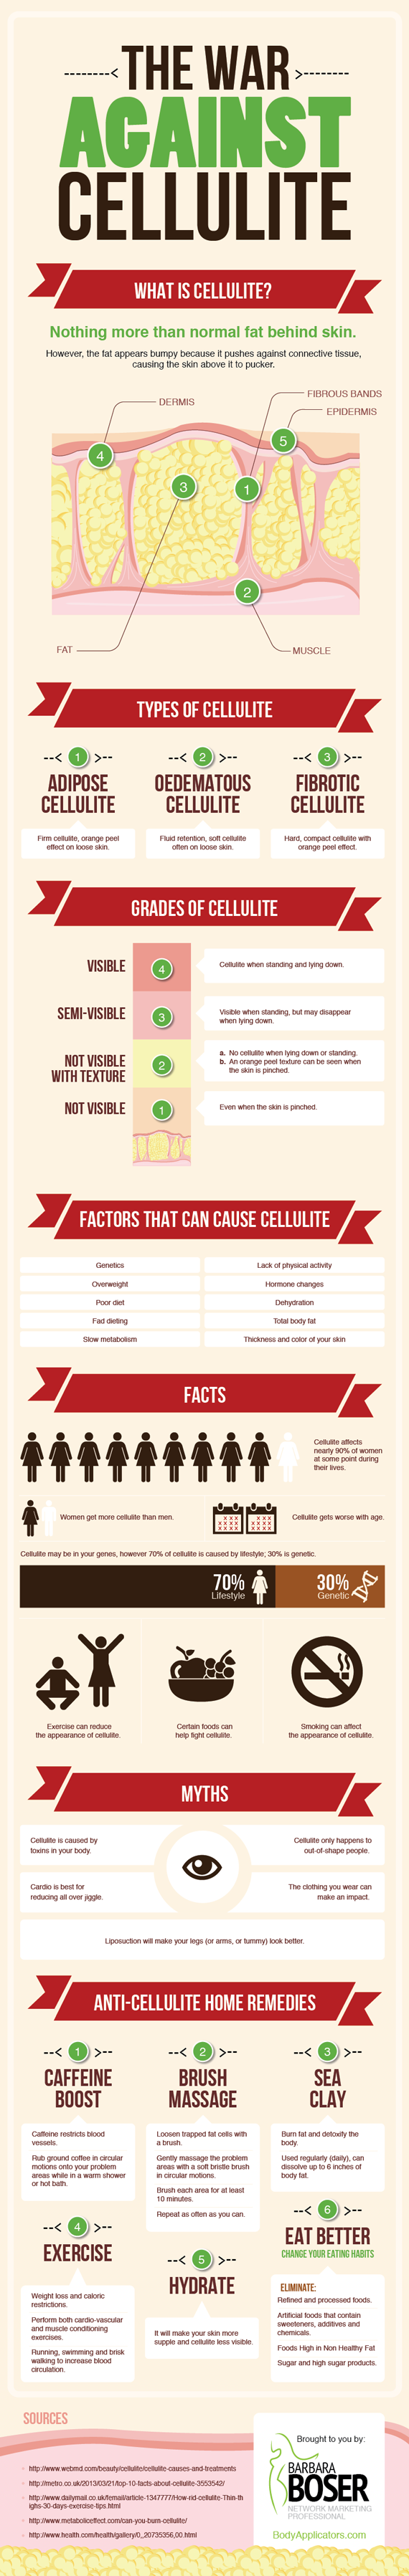 The War Against Cellulite